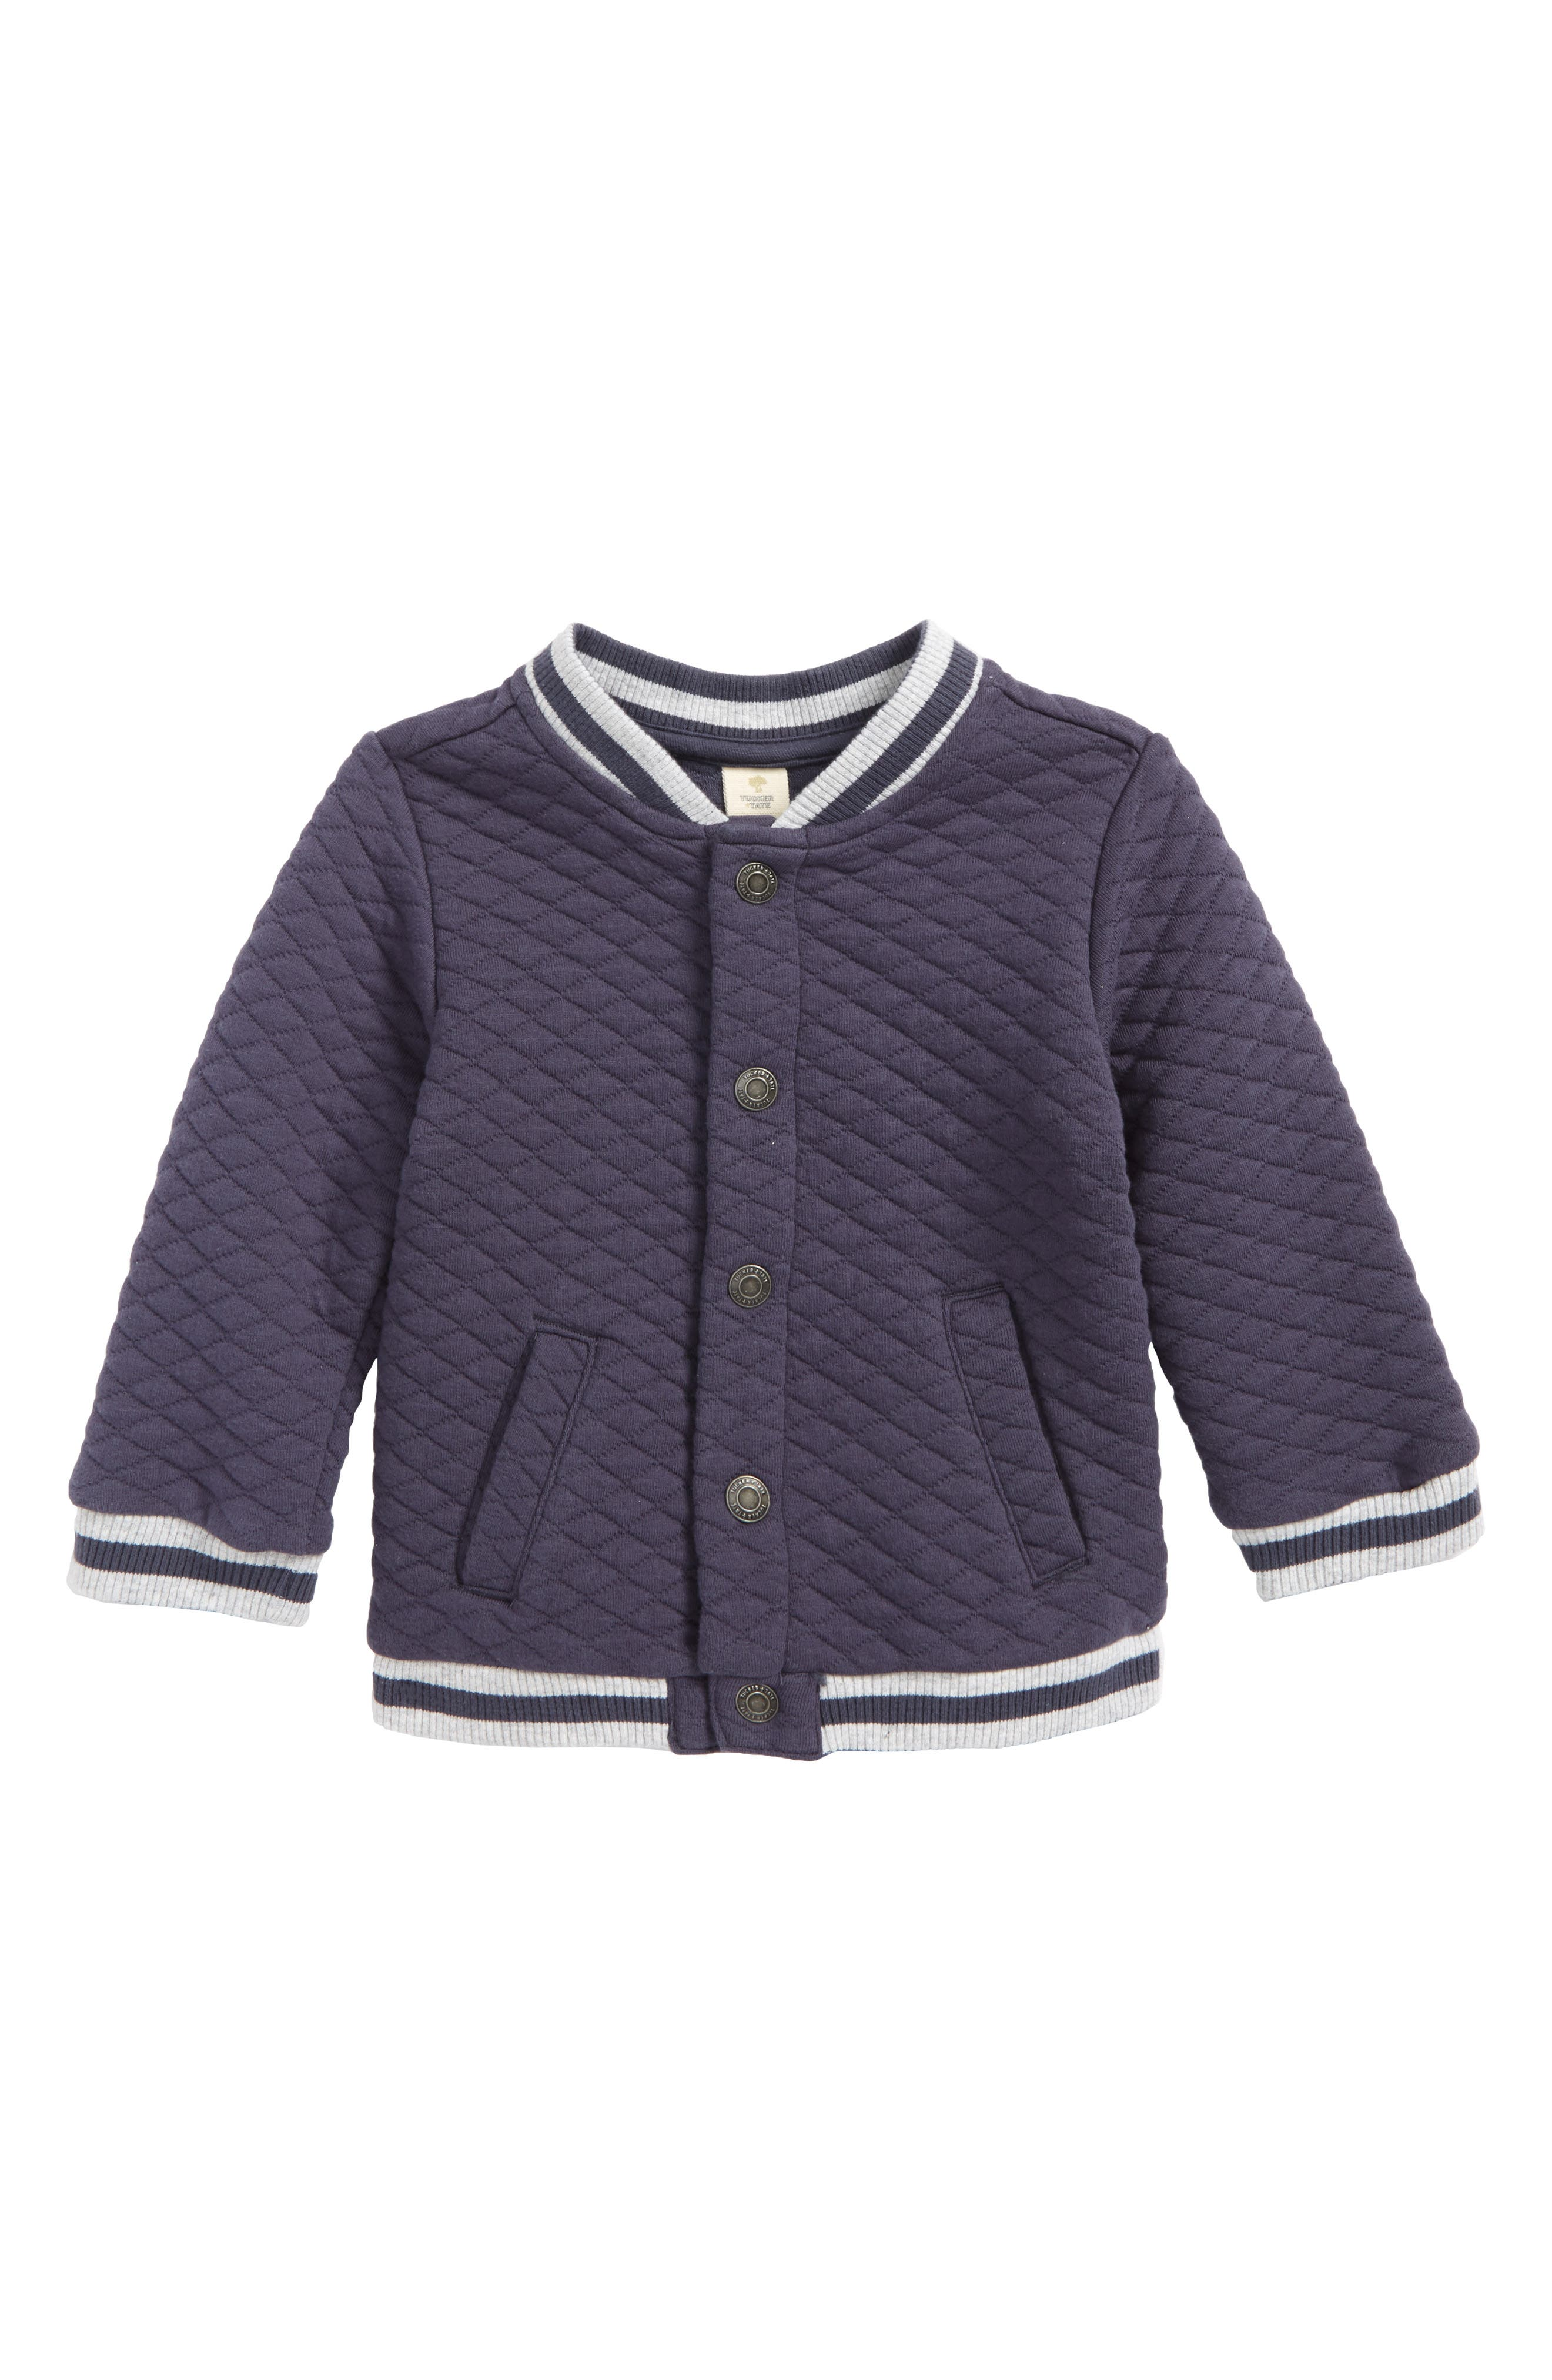 Alternate Image 1 Selected - Tucker + Tate Quilted Baseball Jacket (Baby Boys)